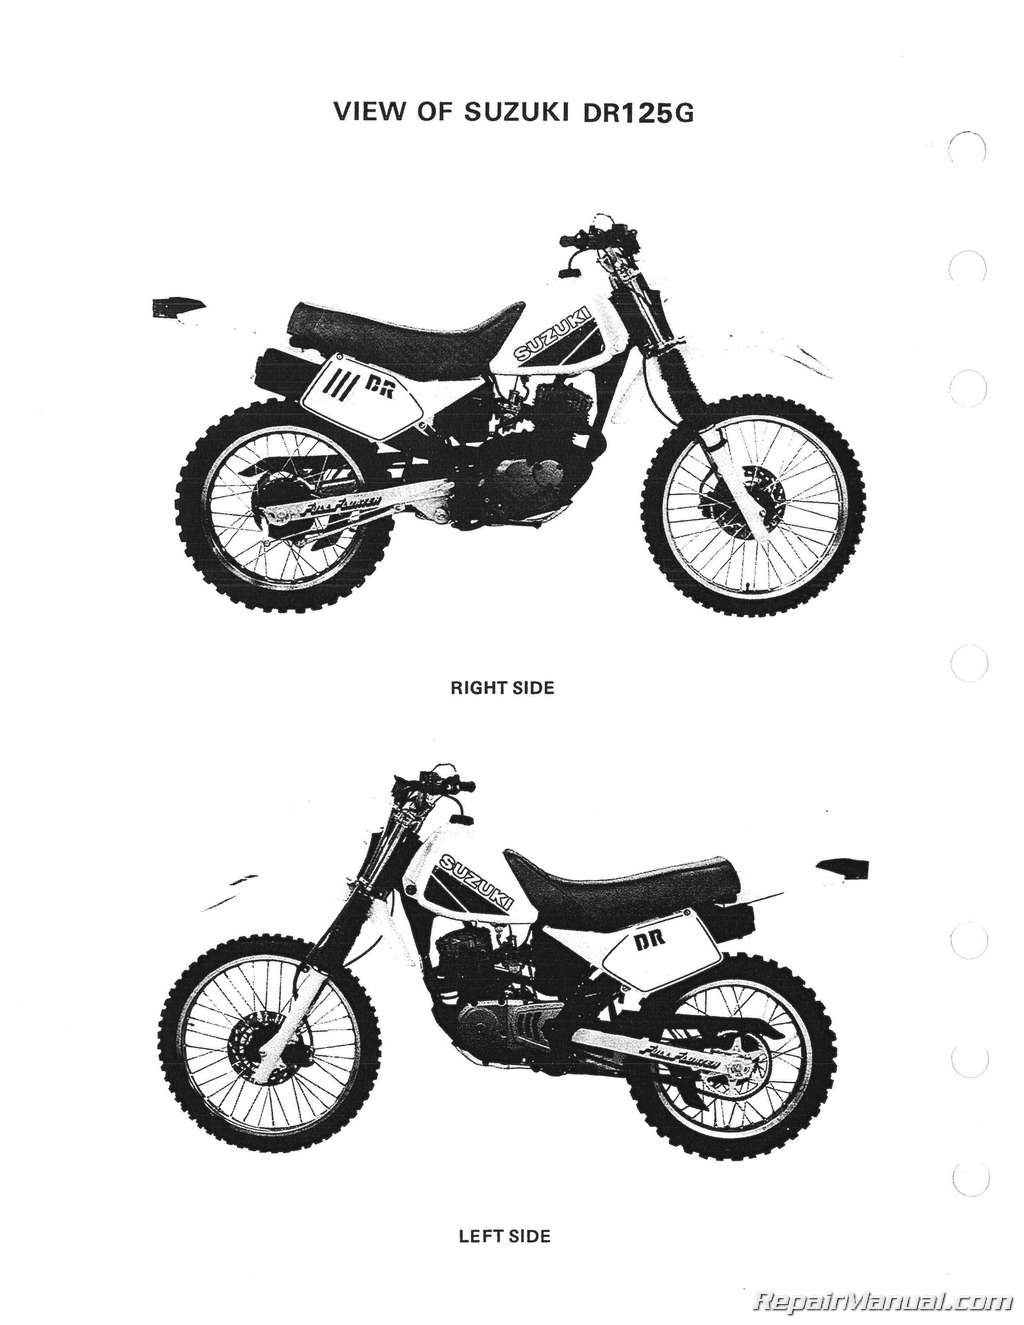 1986 1987 1988 Suzuki DR125 SP125 Motorcycle Service Manual